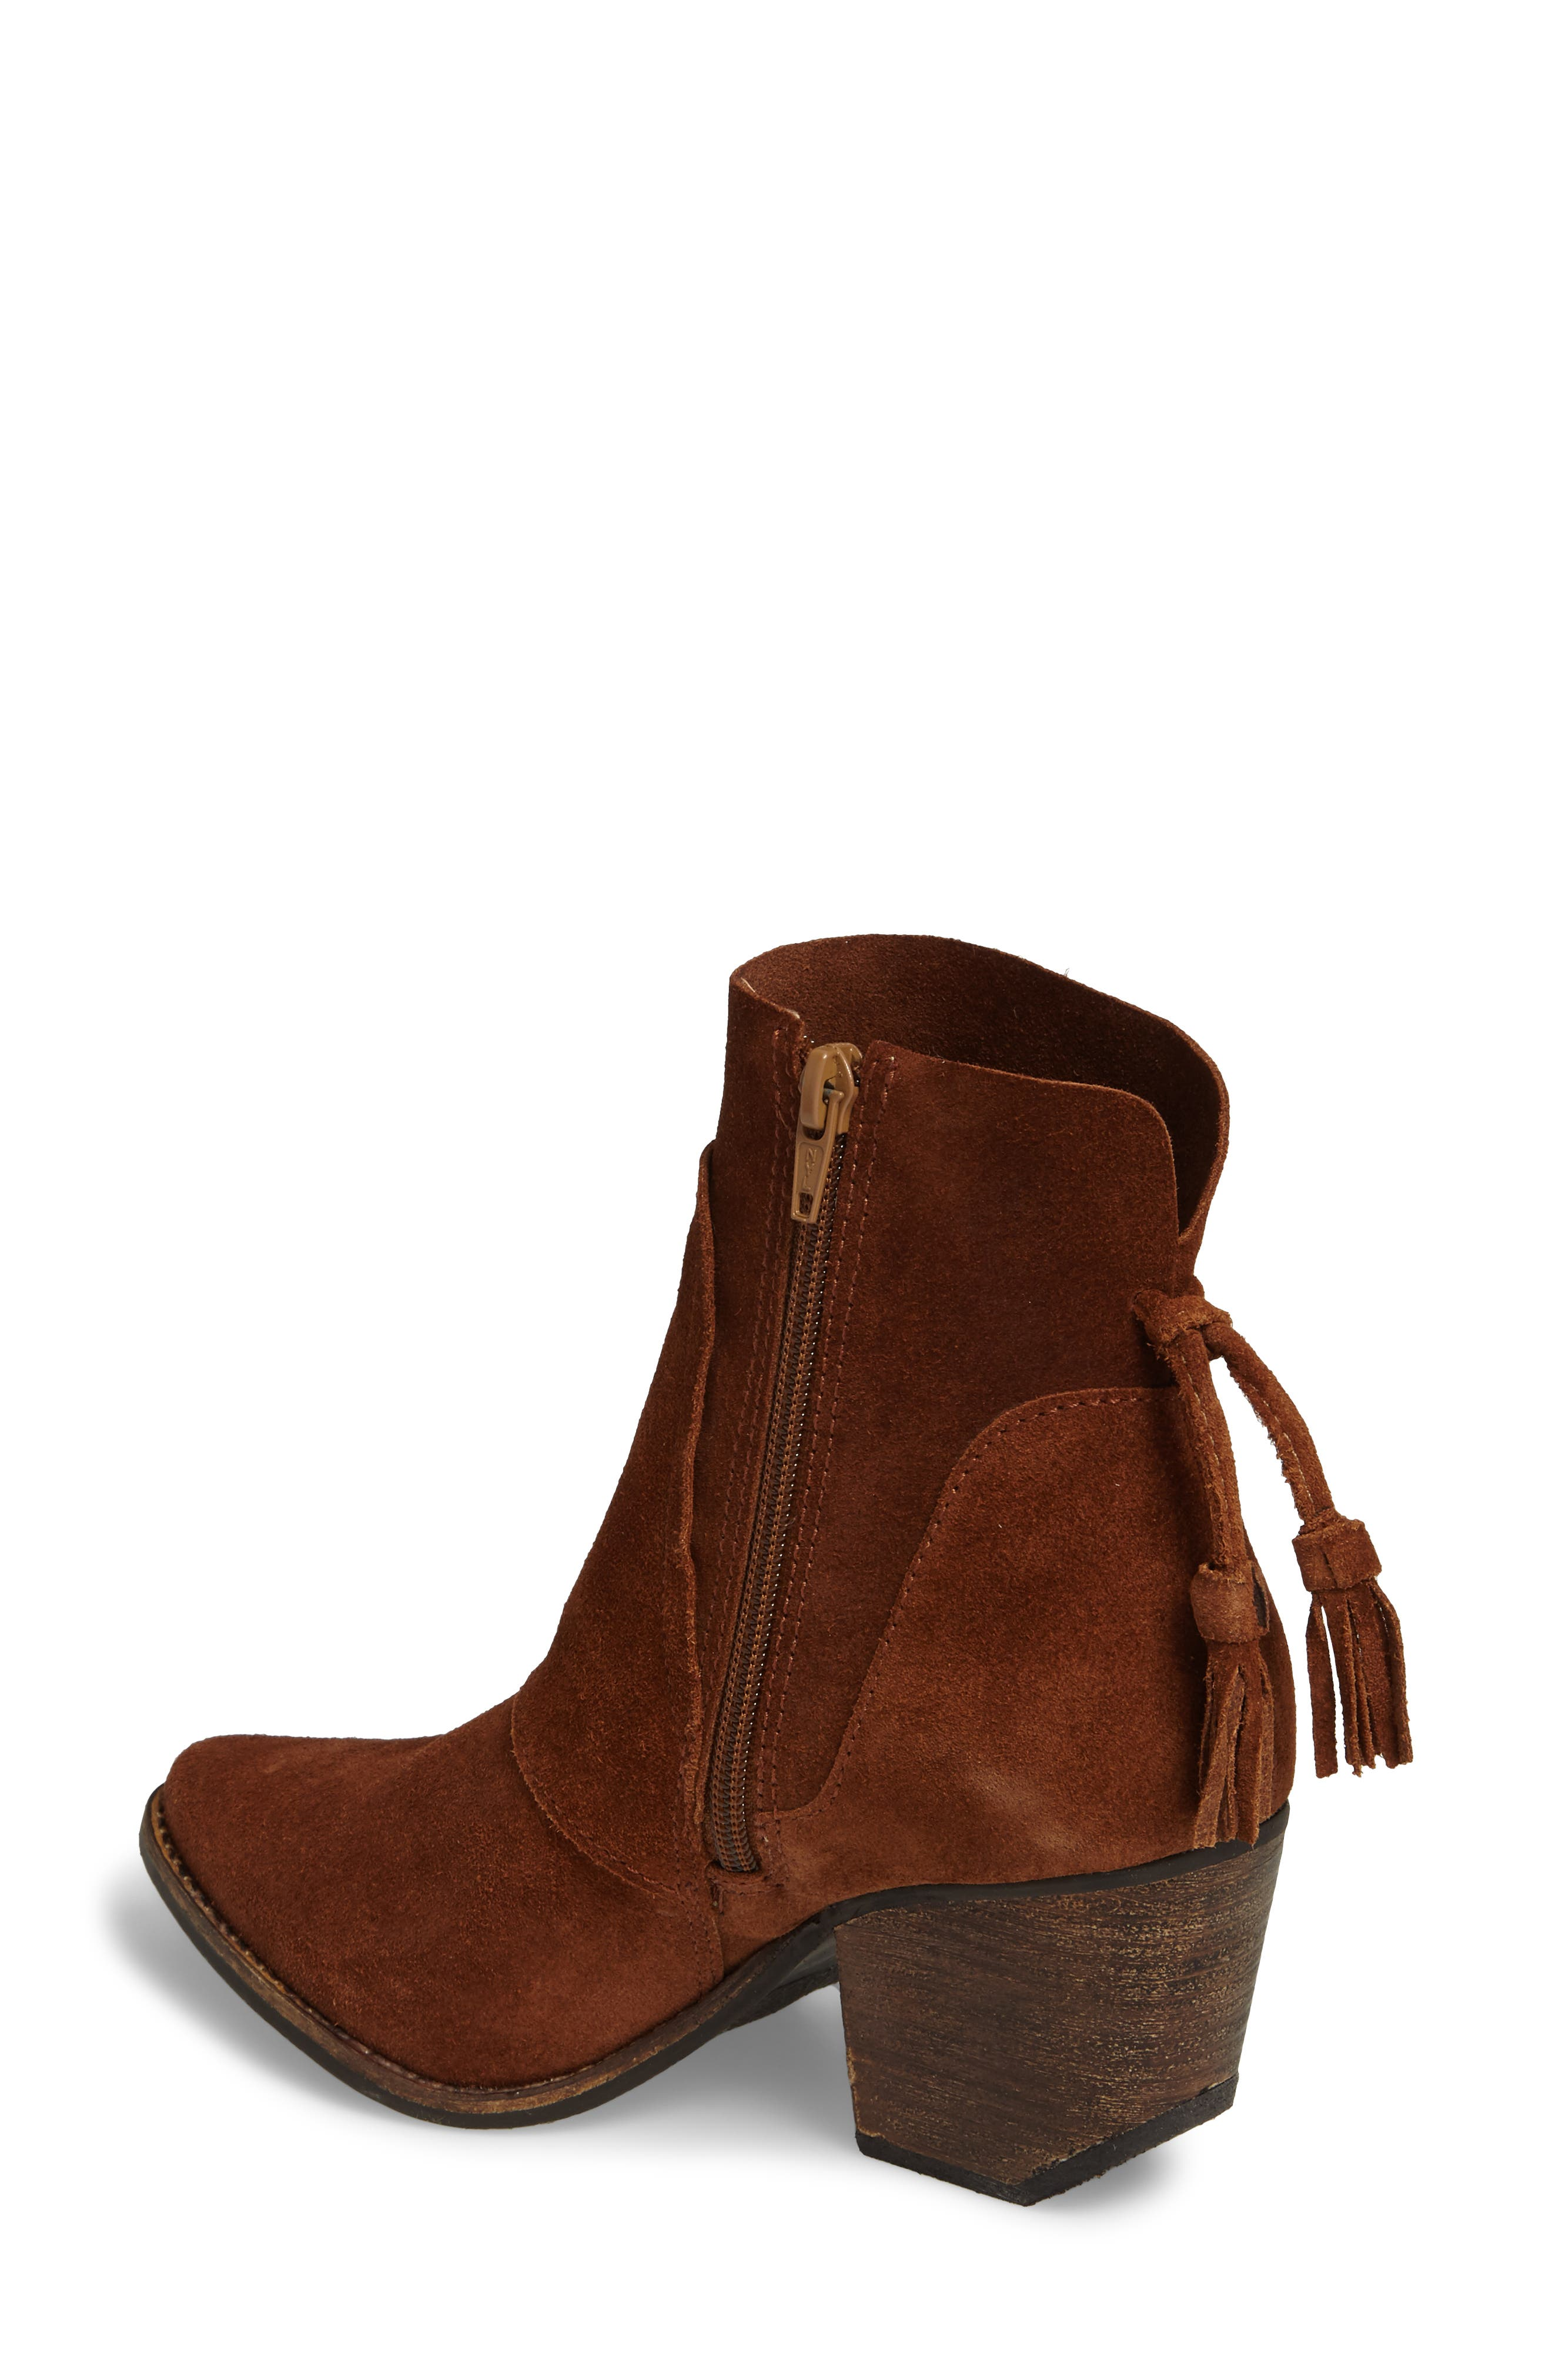 Laney Notched Heel Bootie,                             Alternate thumbnail 7, color,